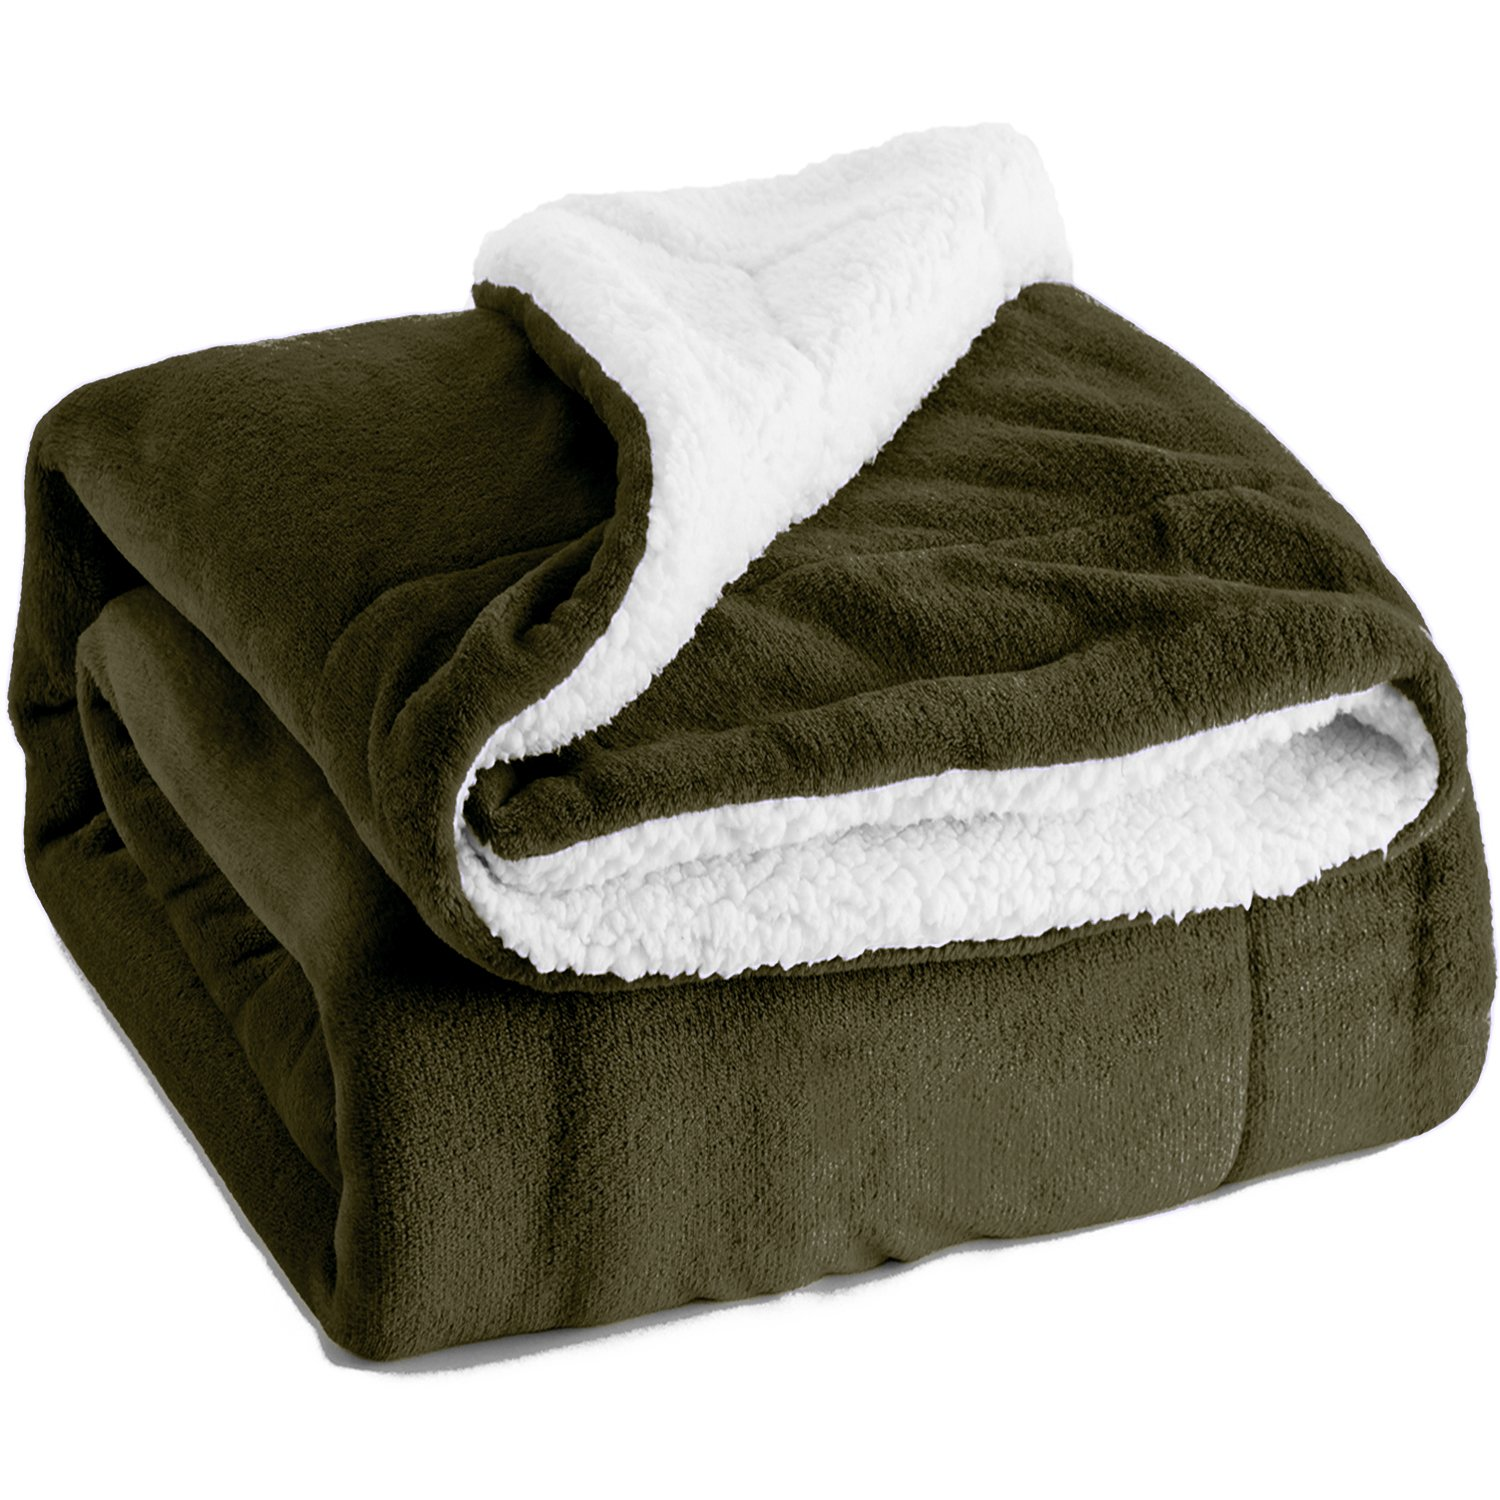 Sherpa Throw Blanket Olive Green Twin Size Reversible Fuzzy Bed Blankets Microfiber All Seasons Luxury Fluffy Blanket for Bed or Couch 60\